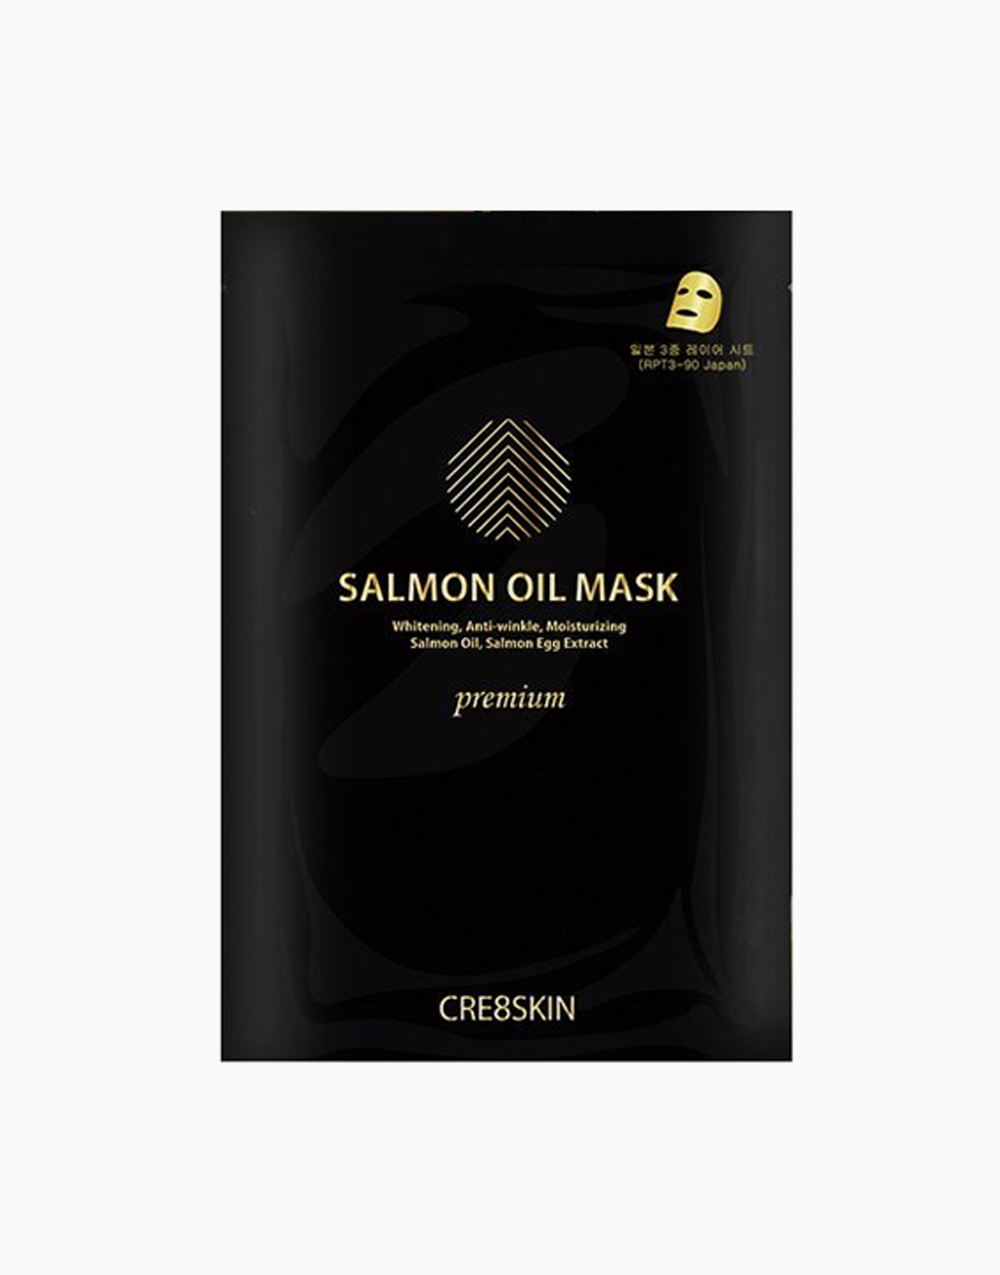 Salmon Oil Mask by CRE8SKIN